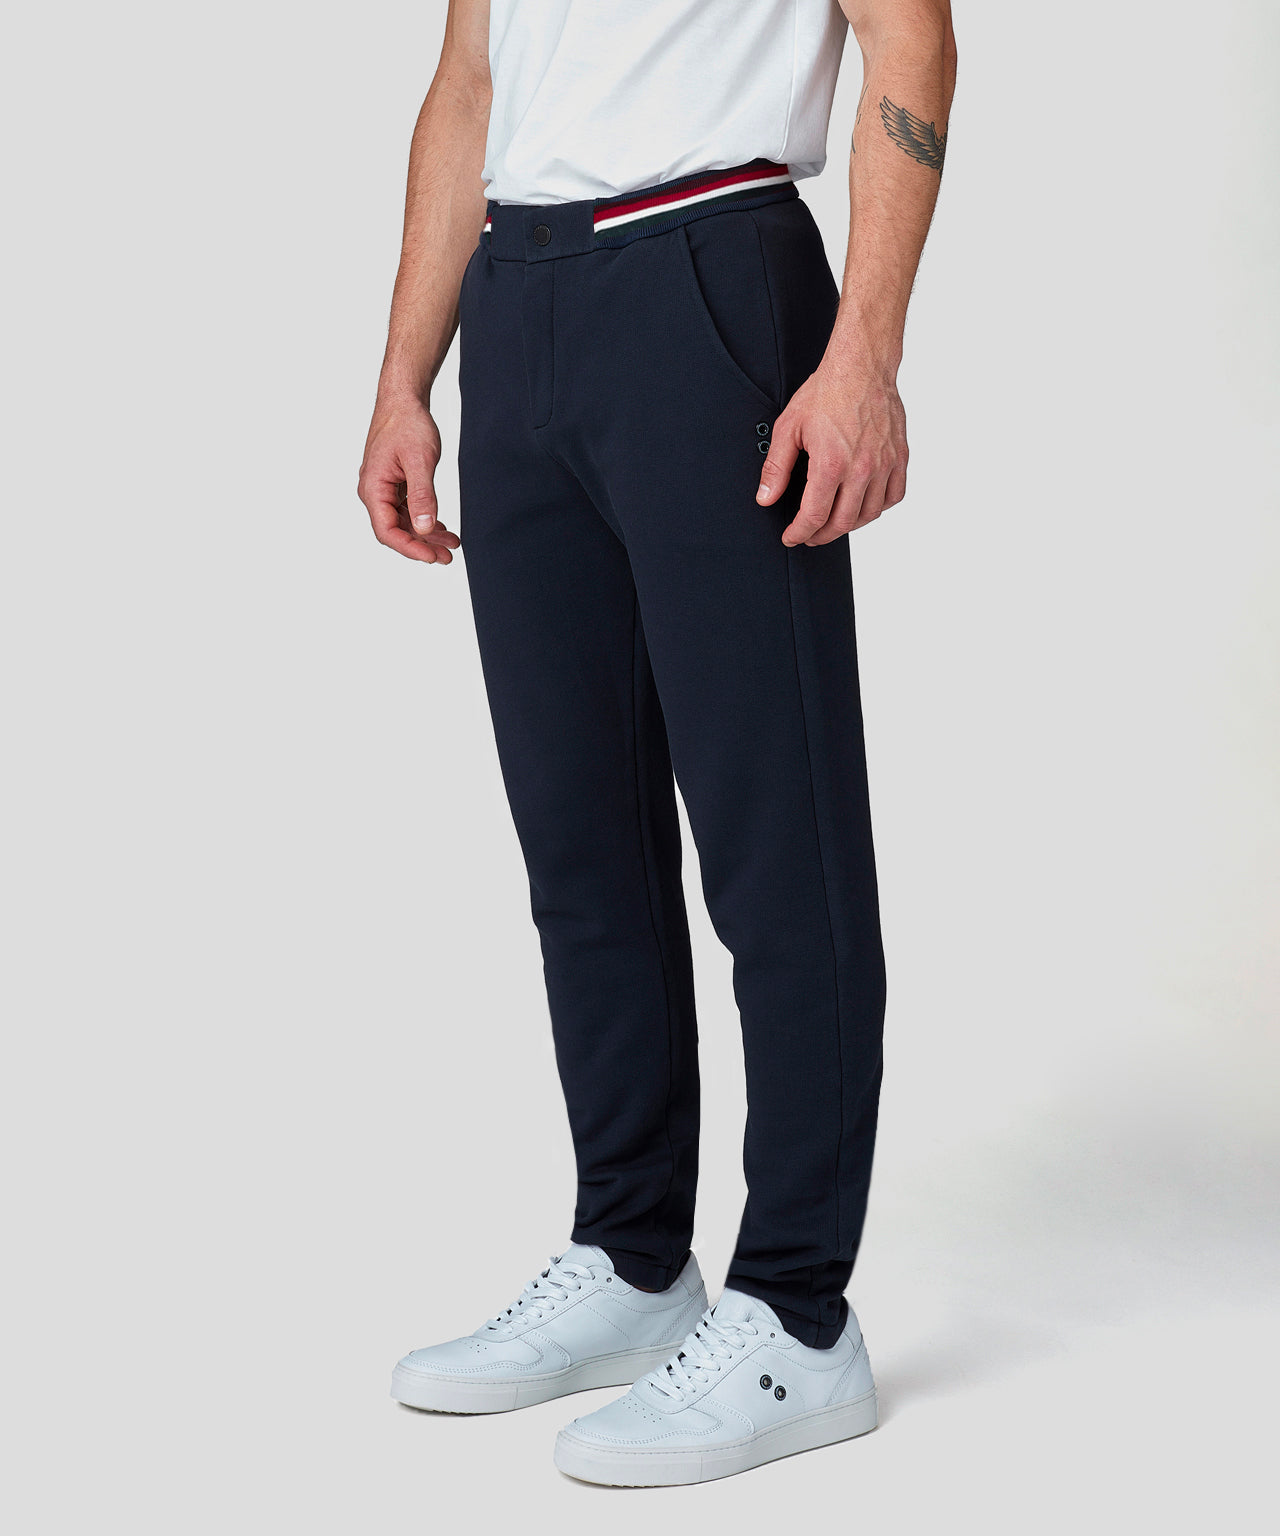 Urban Pants Waist Stripes - navy